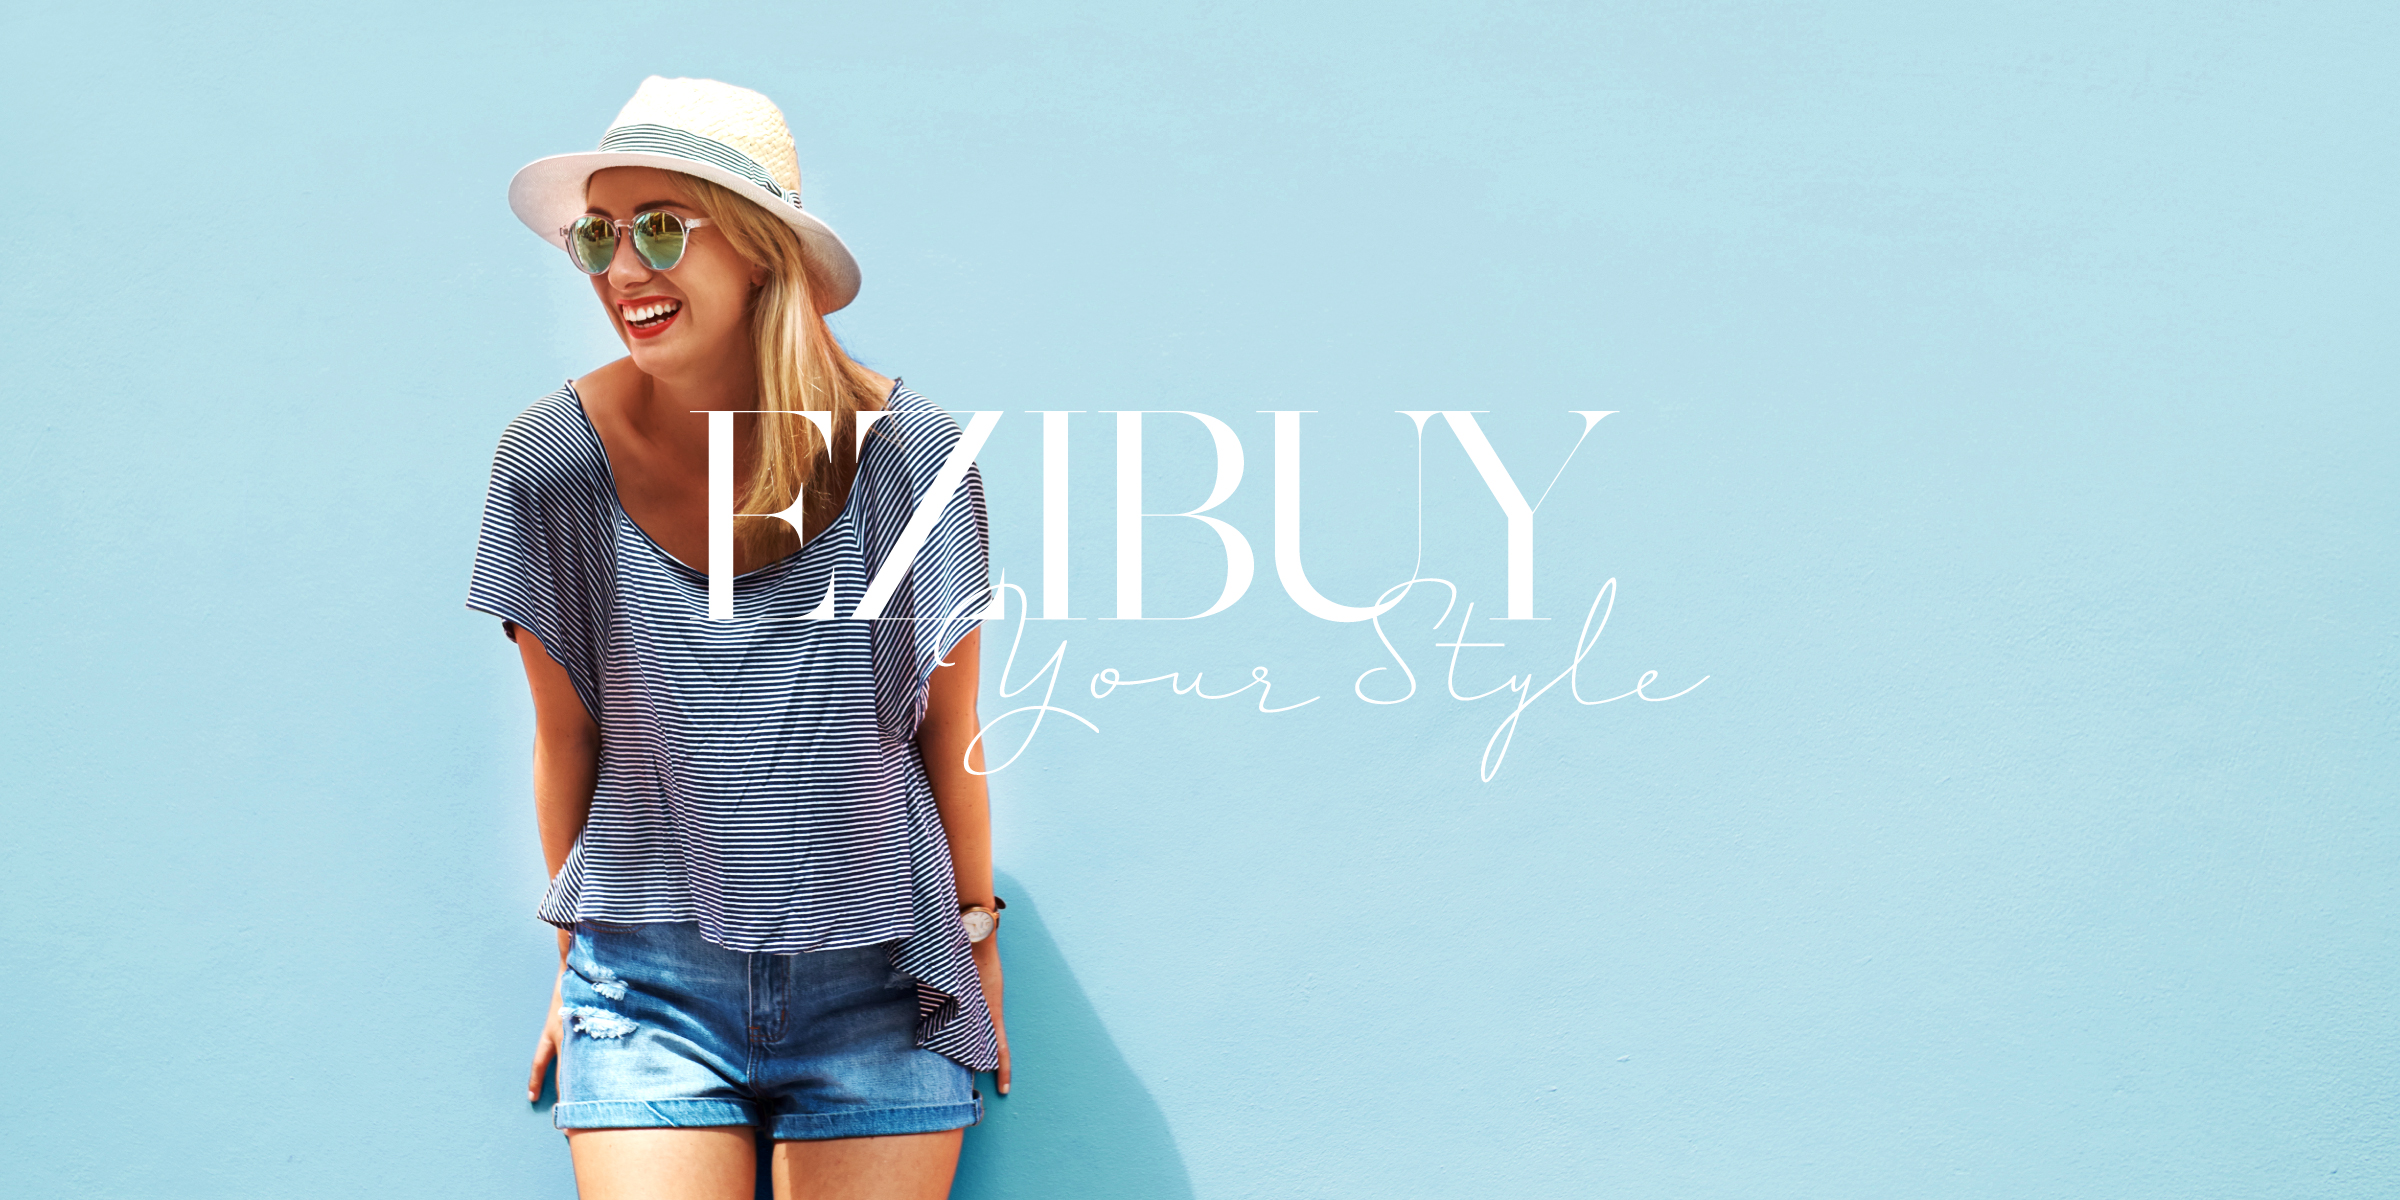 Ezibuy Brand Identity and Fashion Photography